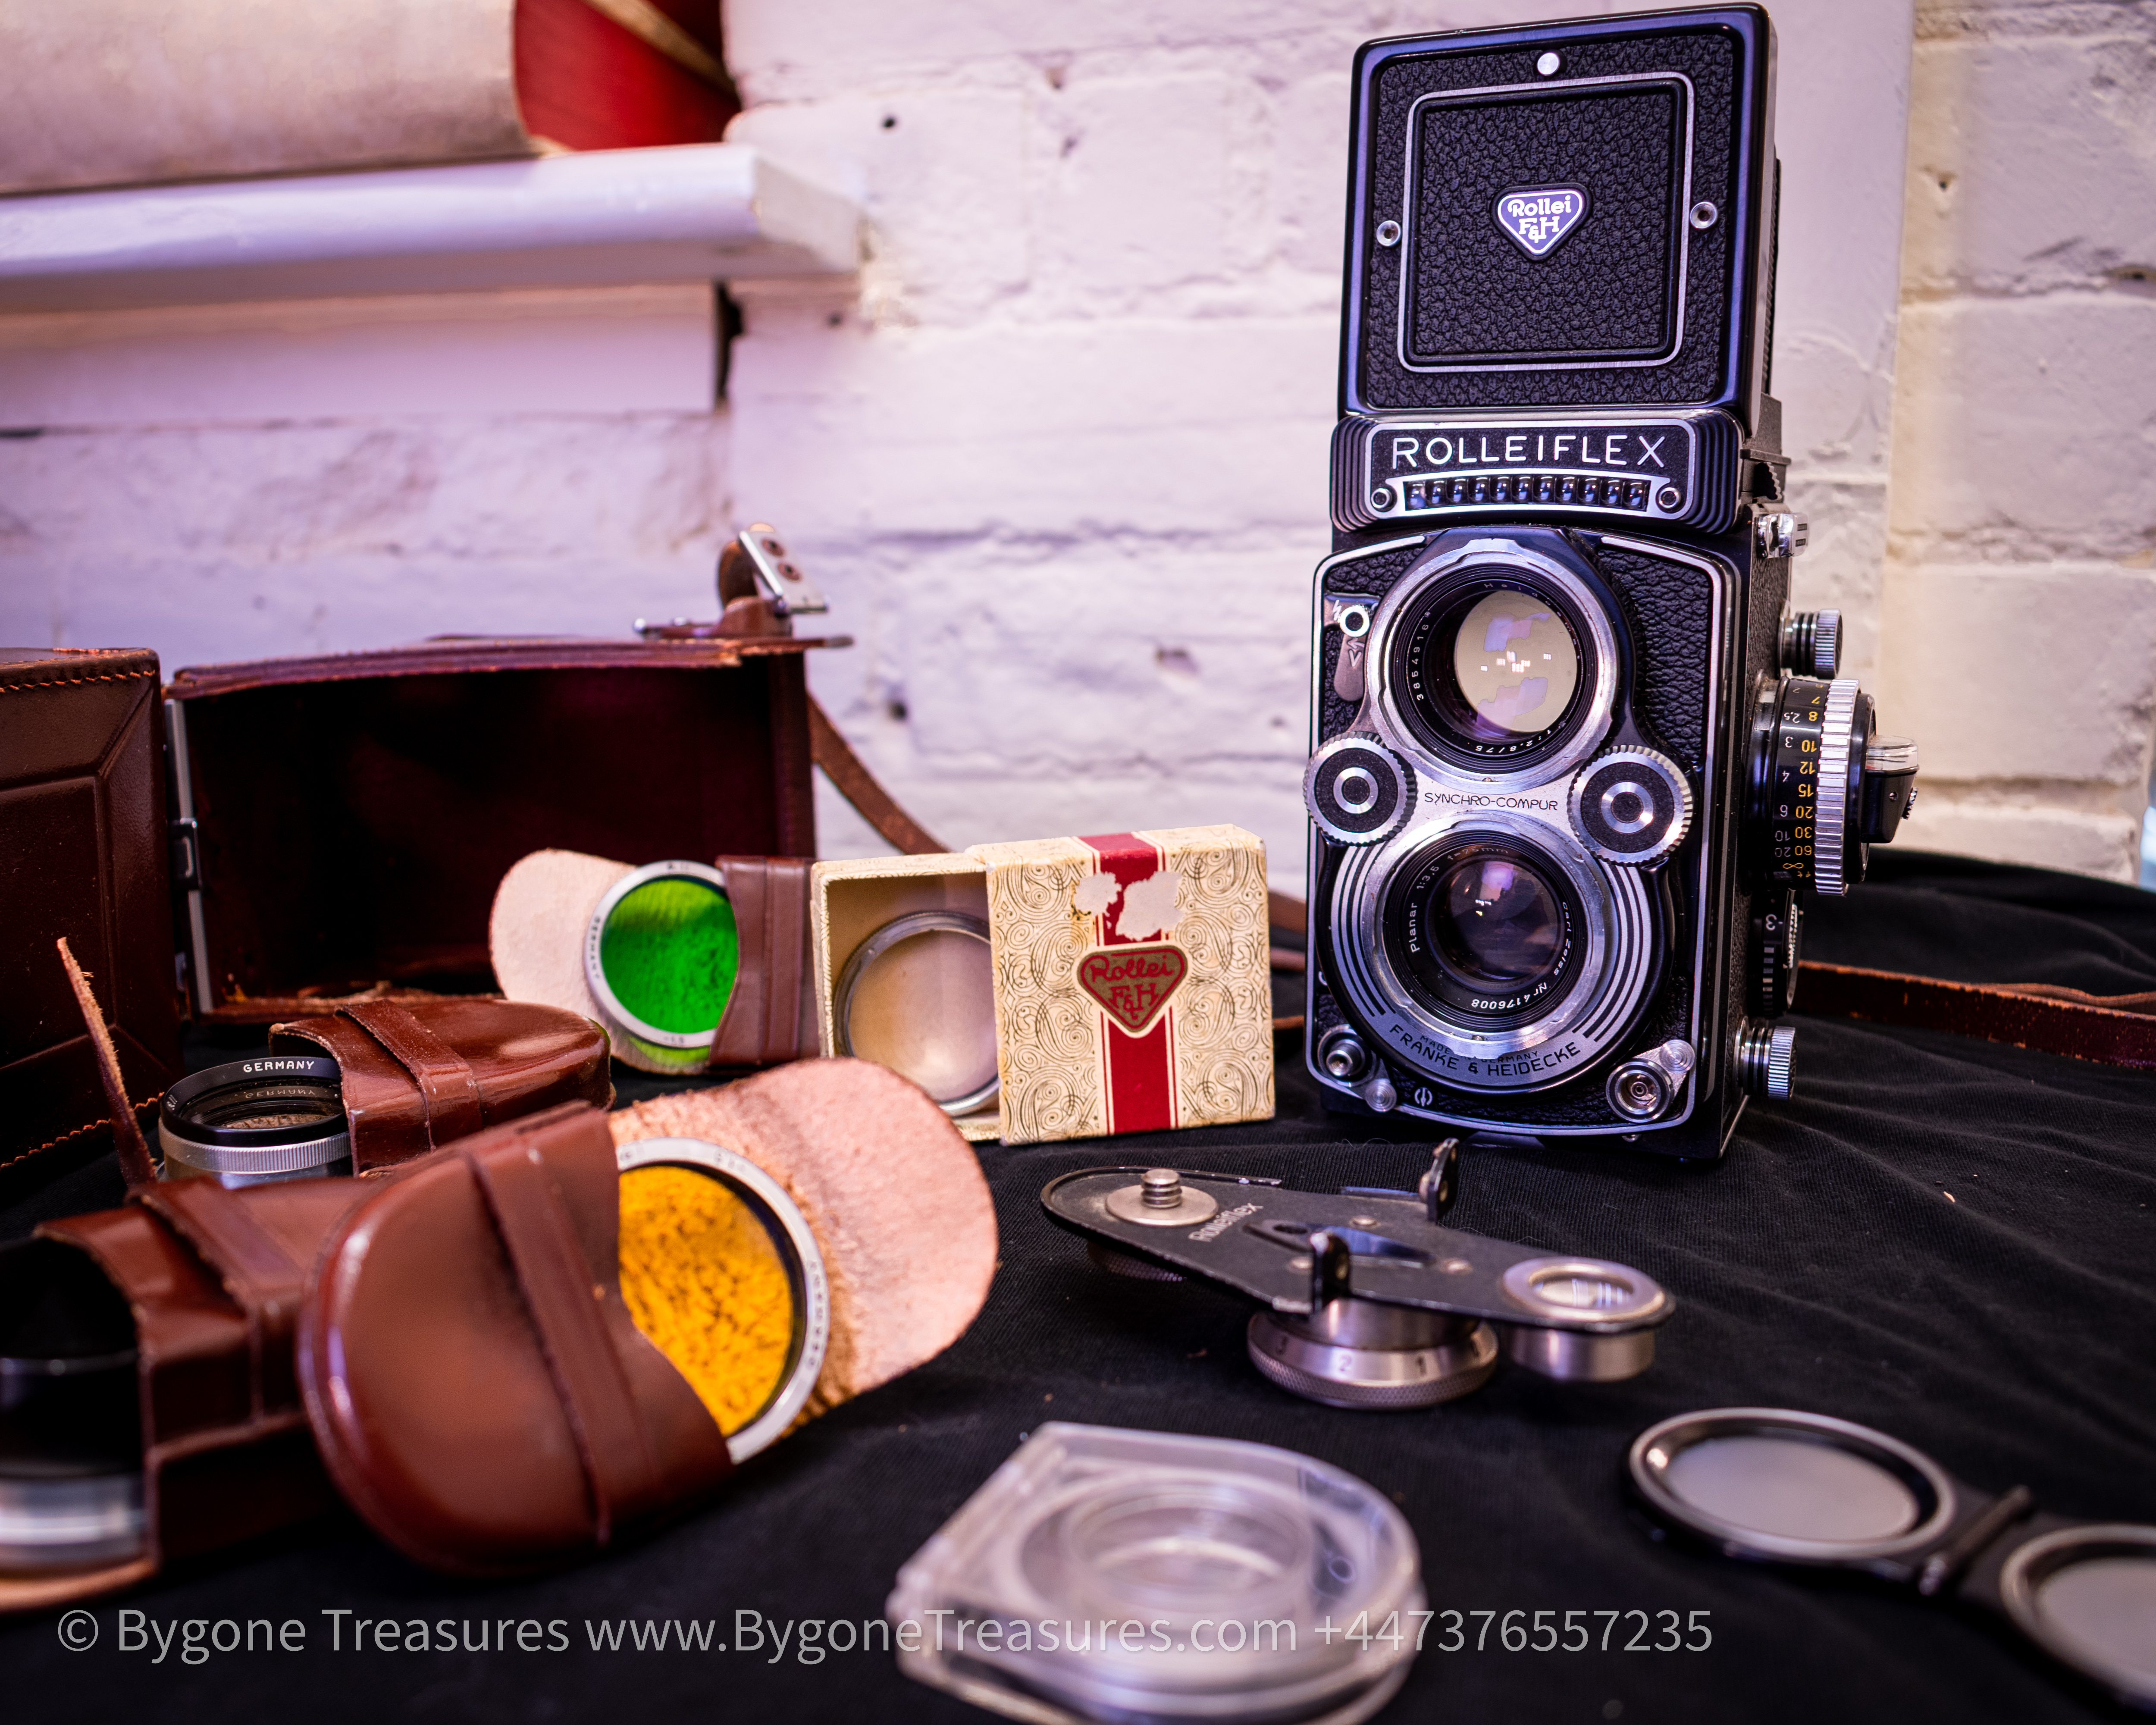 Rolleiflex 3.5 F model 3 TLR camera with leather case and Accessories-01